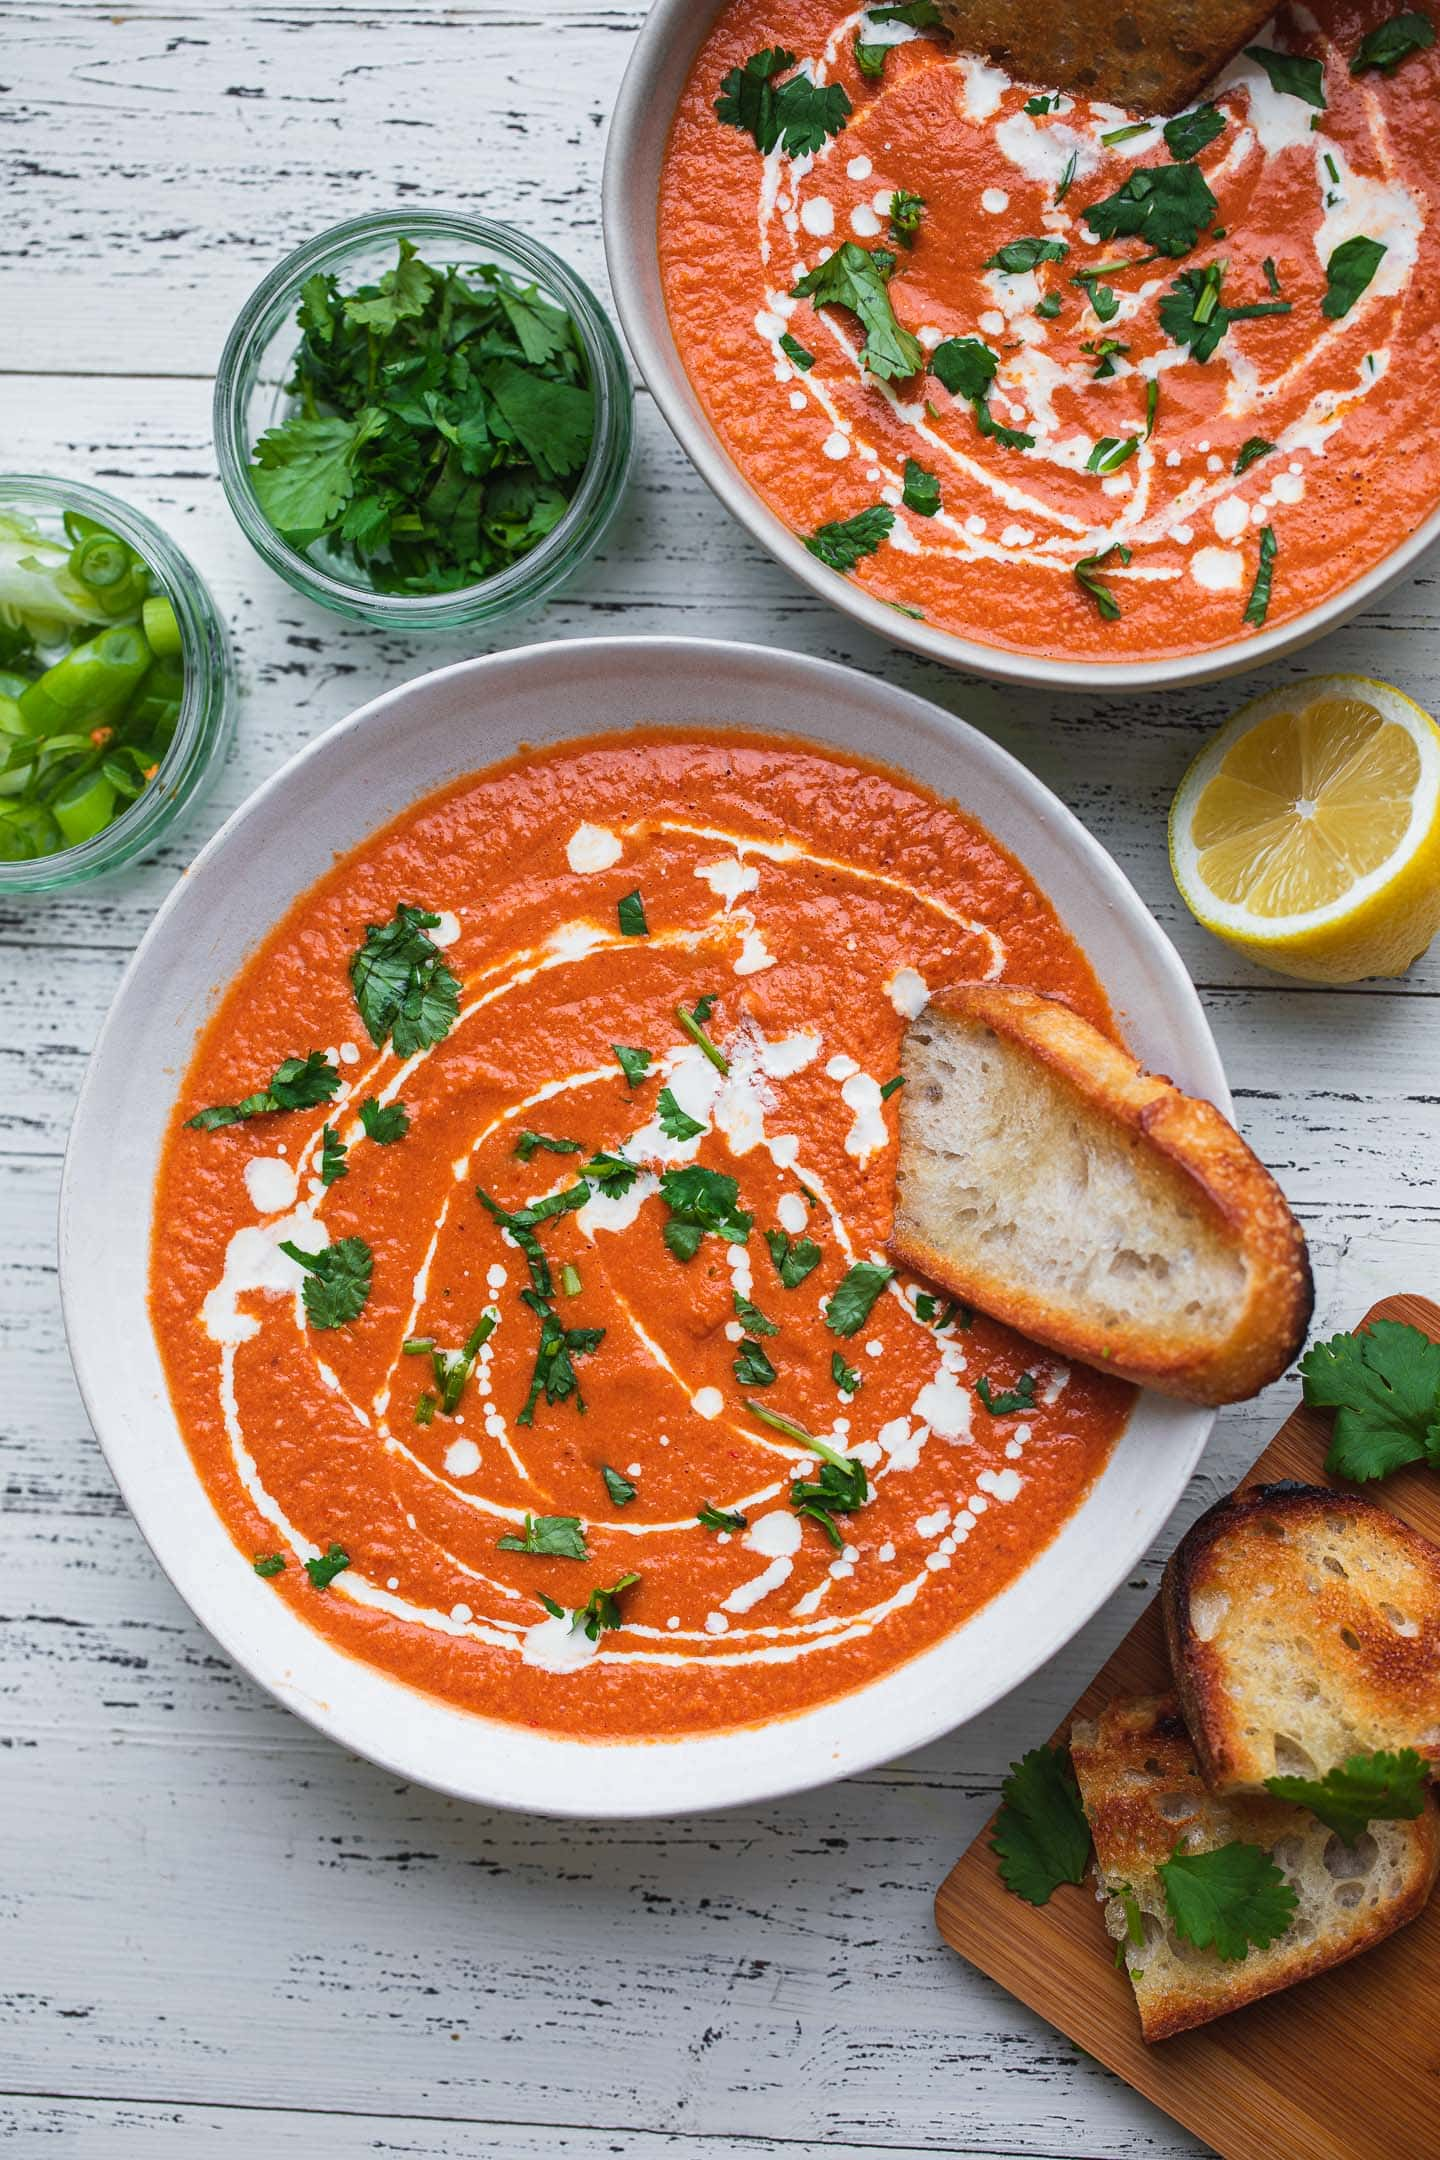 Vegan tomato bisque with bread and herbs